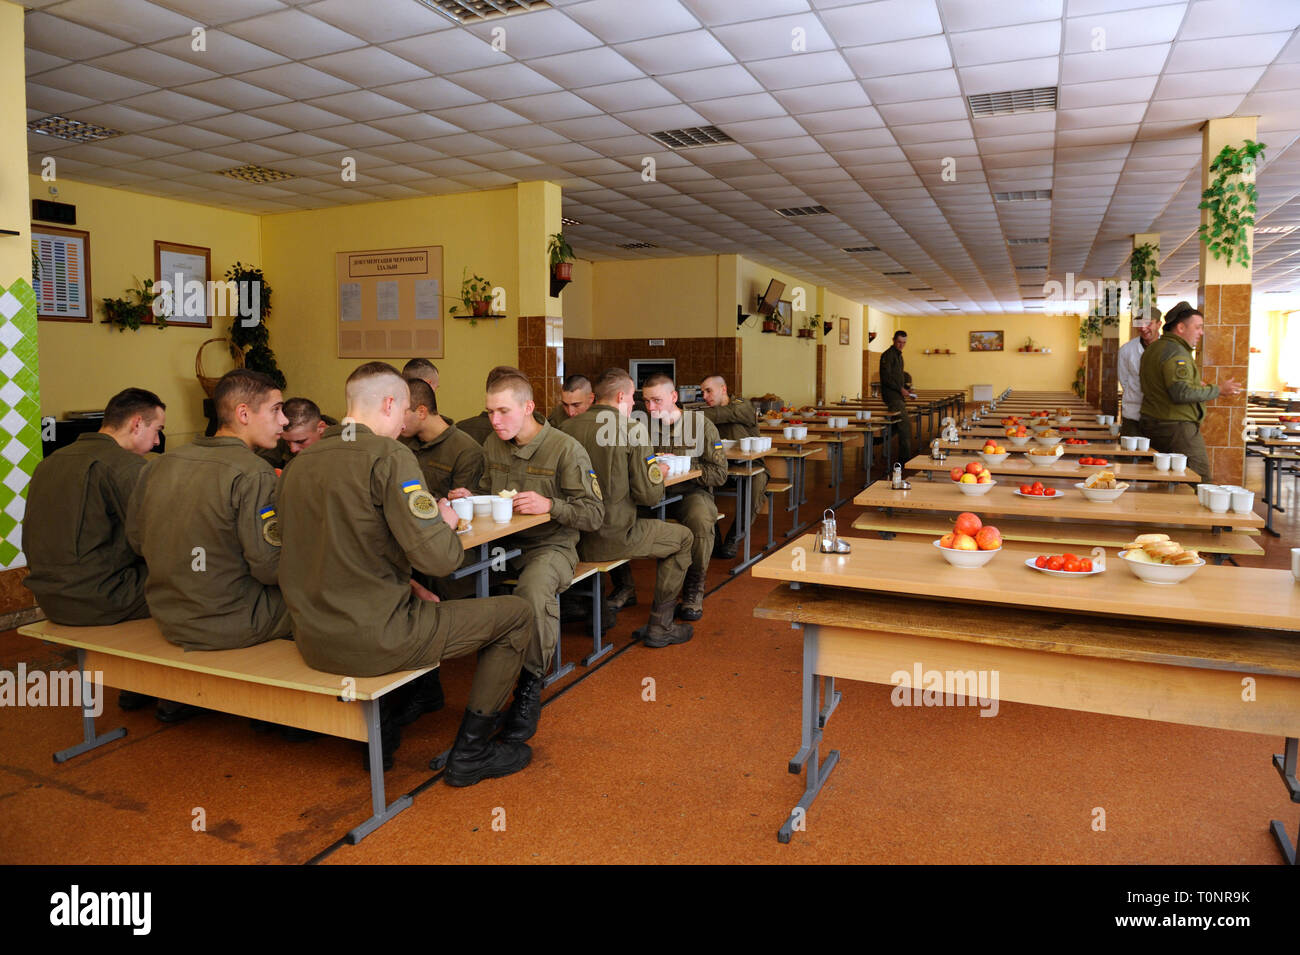 At a mess hall: soldiers sitting at set-out tables and eating. Novo-Petrivtsi military base, Ukraine. November 12, 2018 - Stock Image